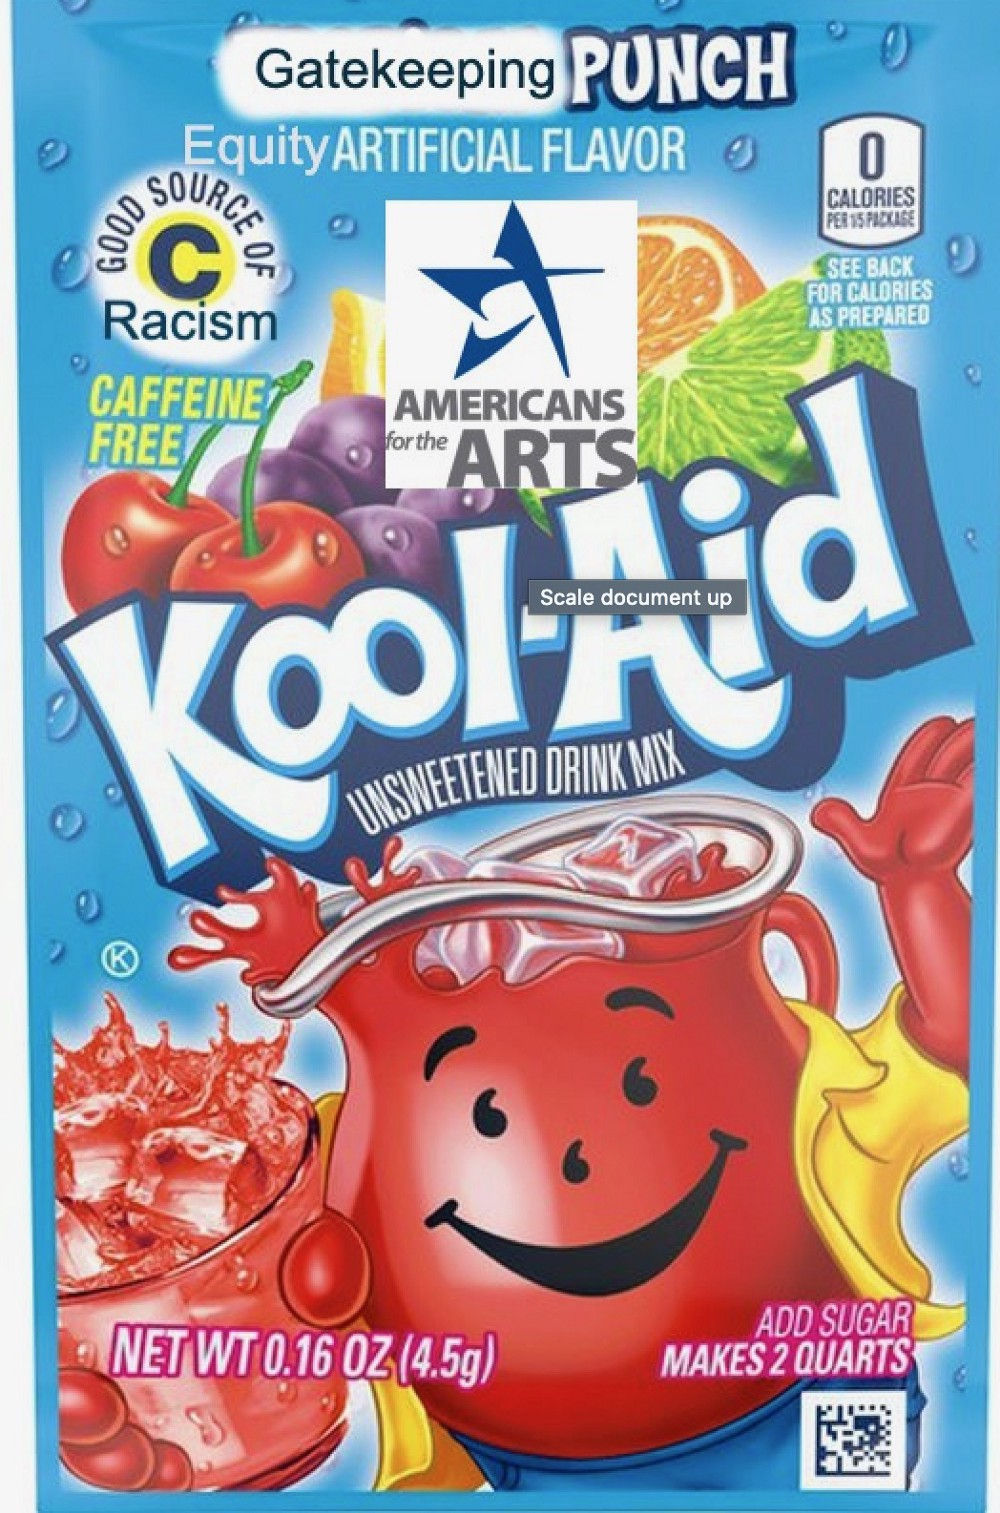 """A Koolaid packet adapted that says """"Americans for the Arts Koolaid"""" which has Equity Artificial Sweetener, Gatekeeping Punch, and a Good Source of Racism."""